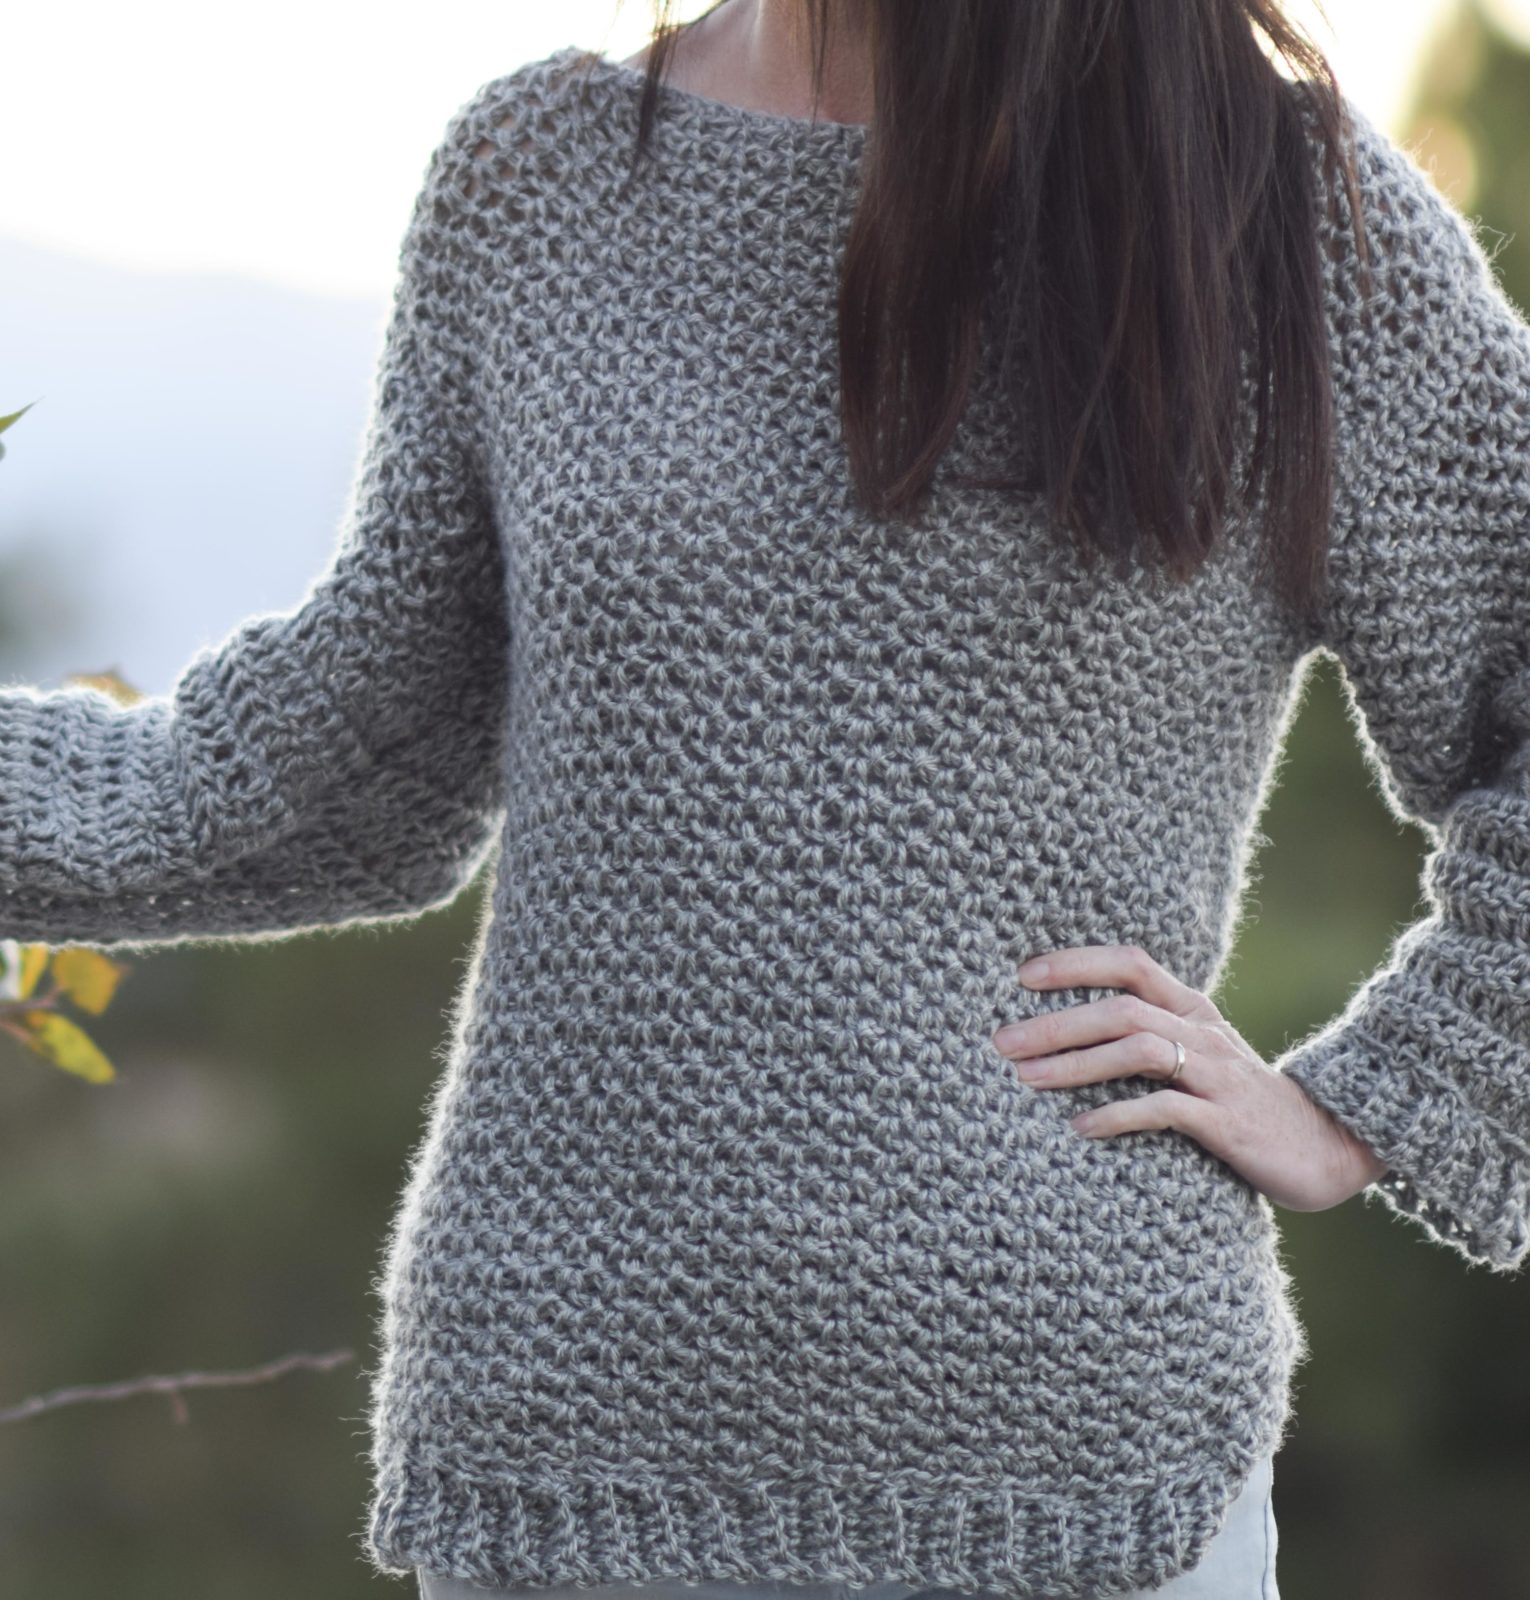 Free Sweater Patterns To Knit How To Make An Easy Crocheted Sweater Knit Like Mama In A Stitch